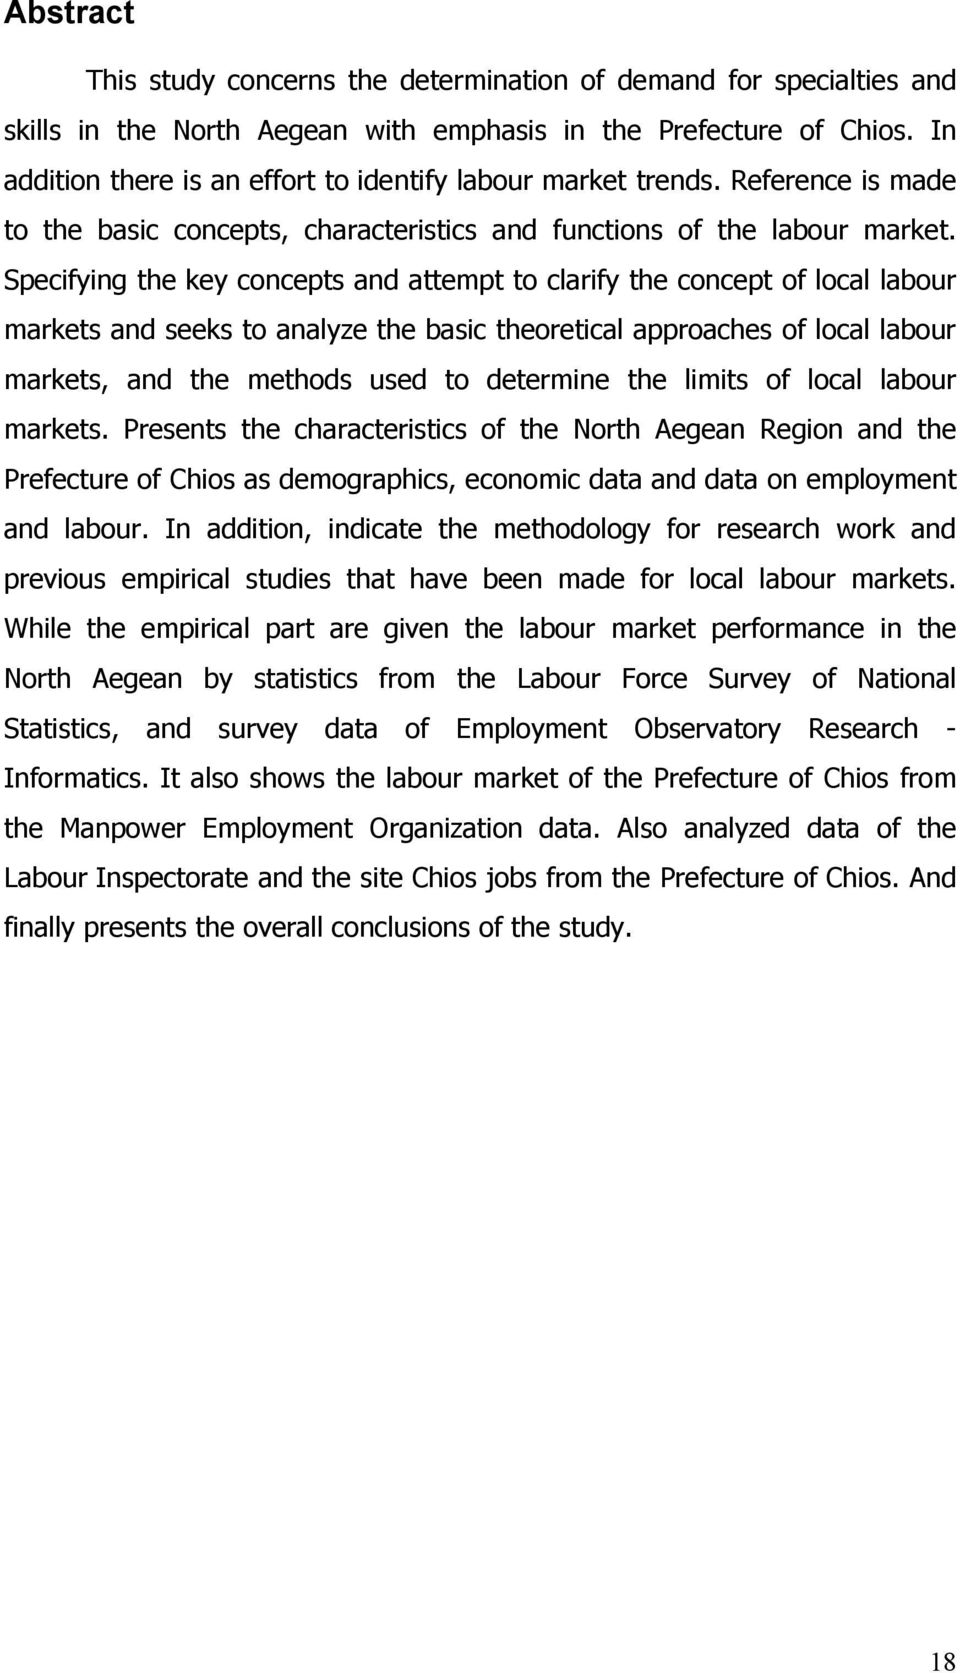 Specifying the key concepts and attempt to clarify the concept of local labour markets and seeks to analyze the basic theoretical approaches of local labour markets, and the methods used to determine